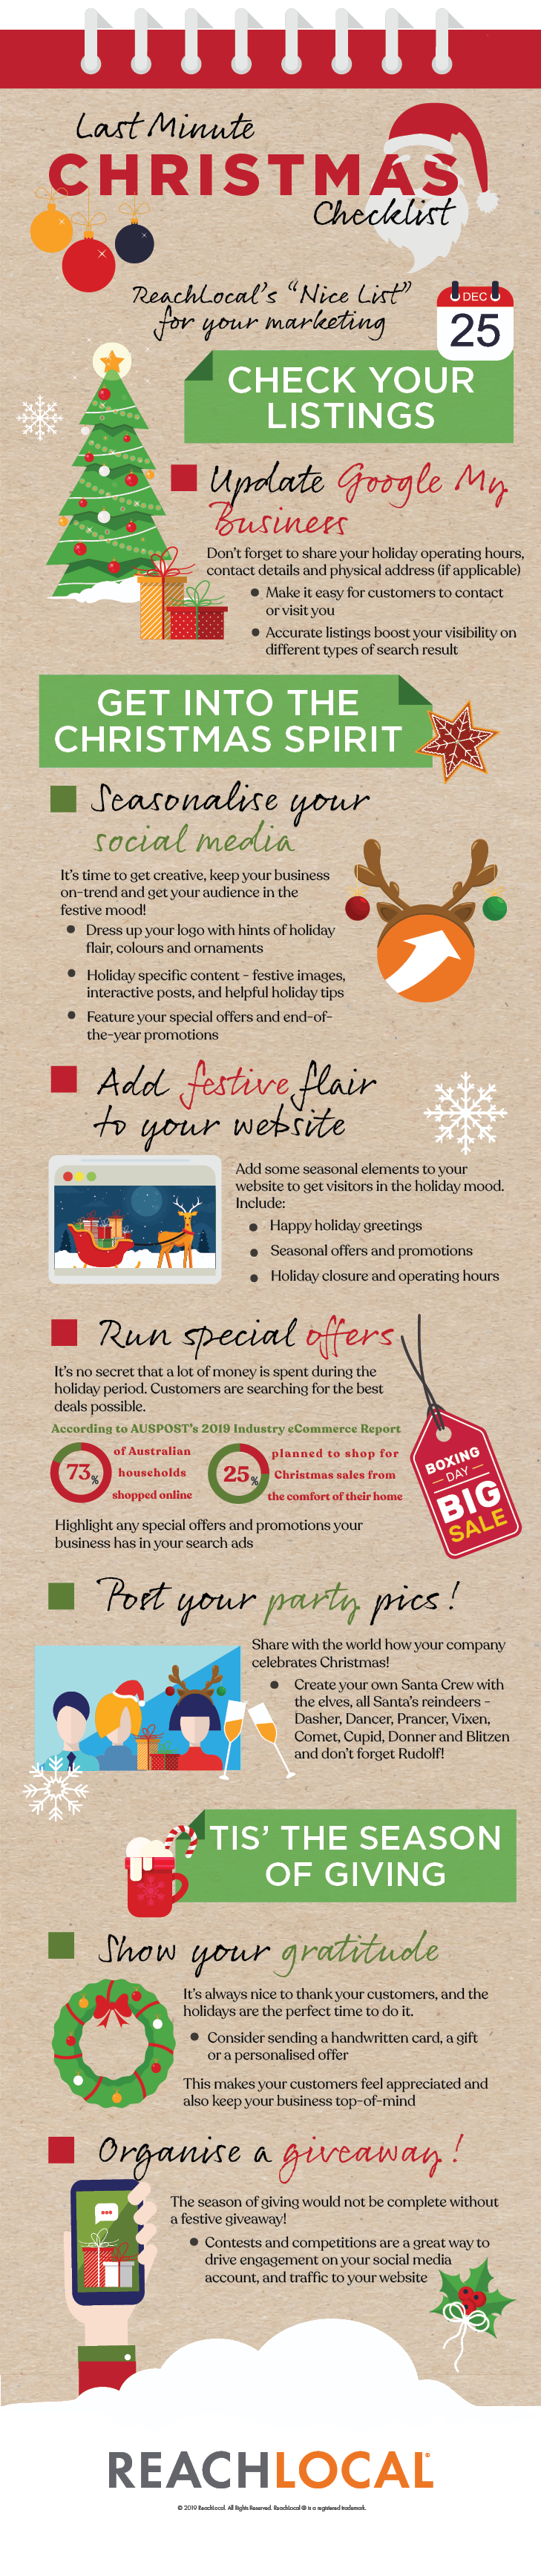 ReachLocal Infographic: Last-Minute Christmas Marketing Checklist